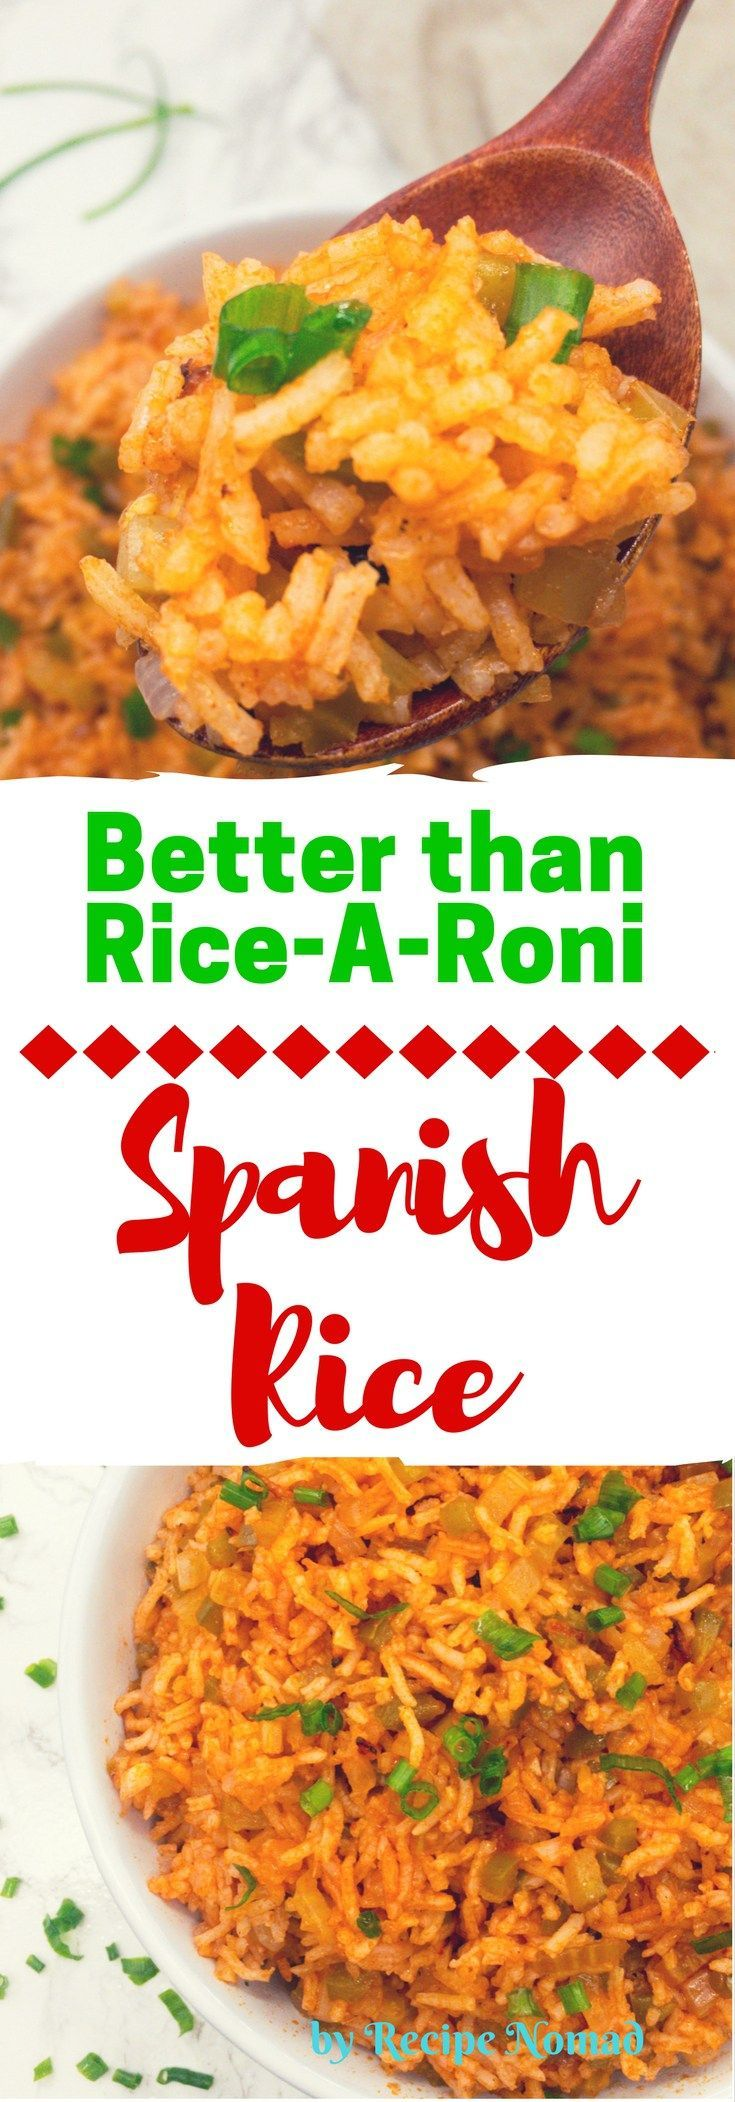 This Easy Homemade Spanish Rice is so much better than Rice-A-Roni Spanish Rice because it's homemade!  Easy Homemade Spanish Rice   Recipe Nomad